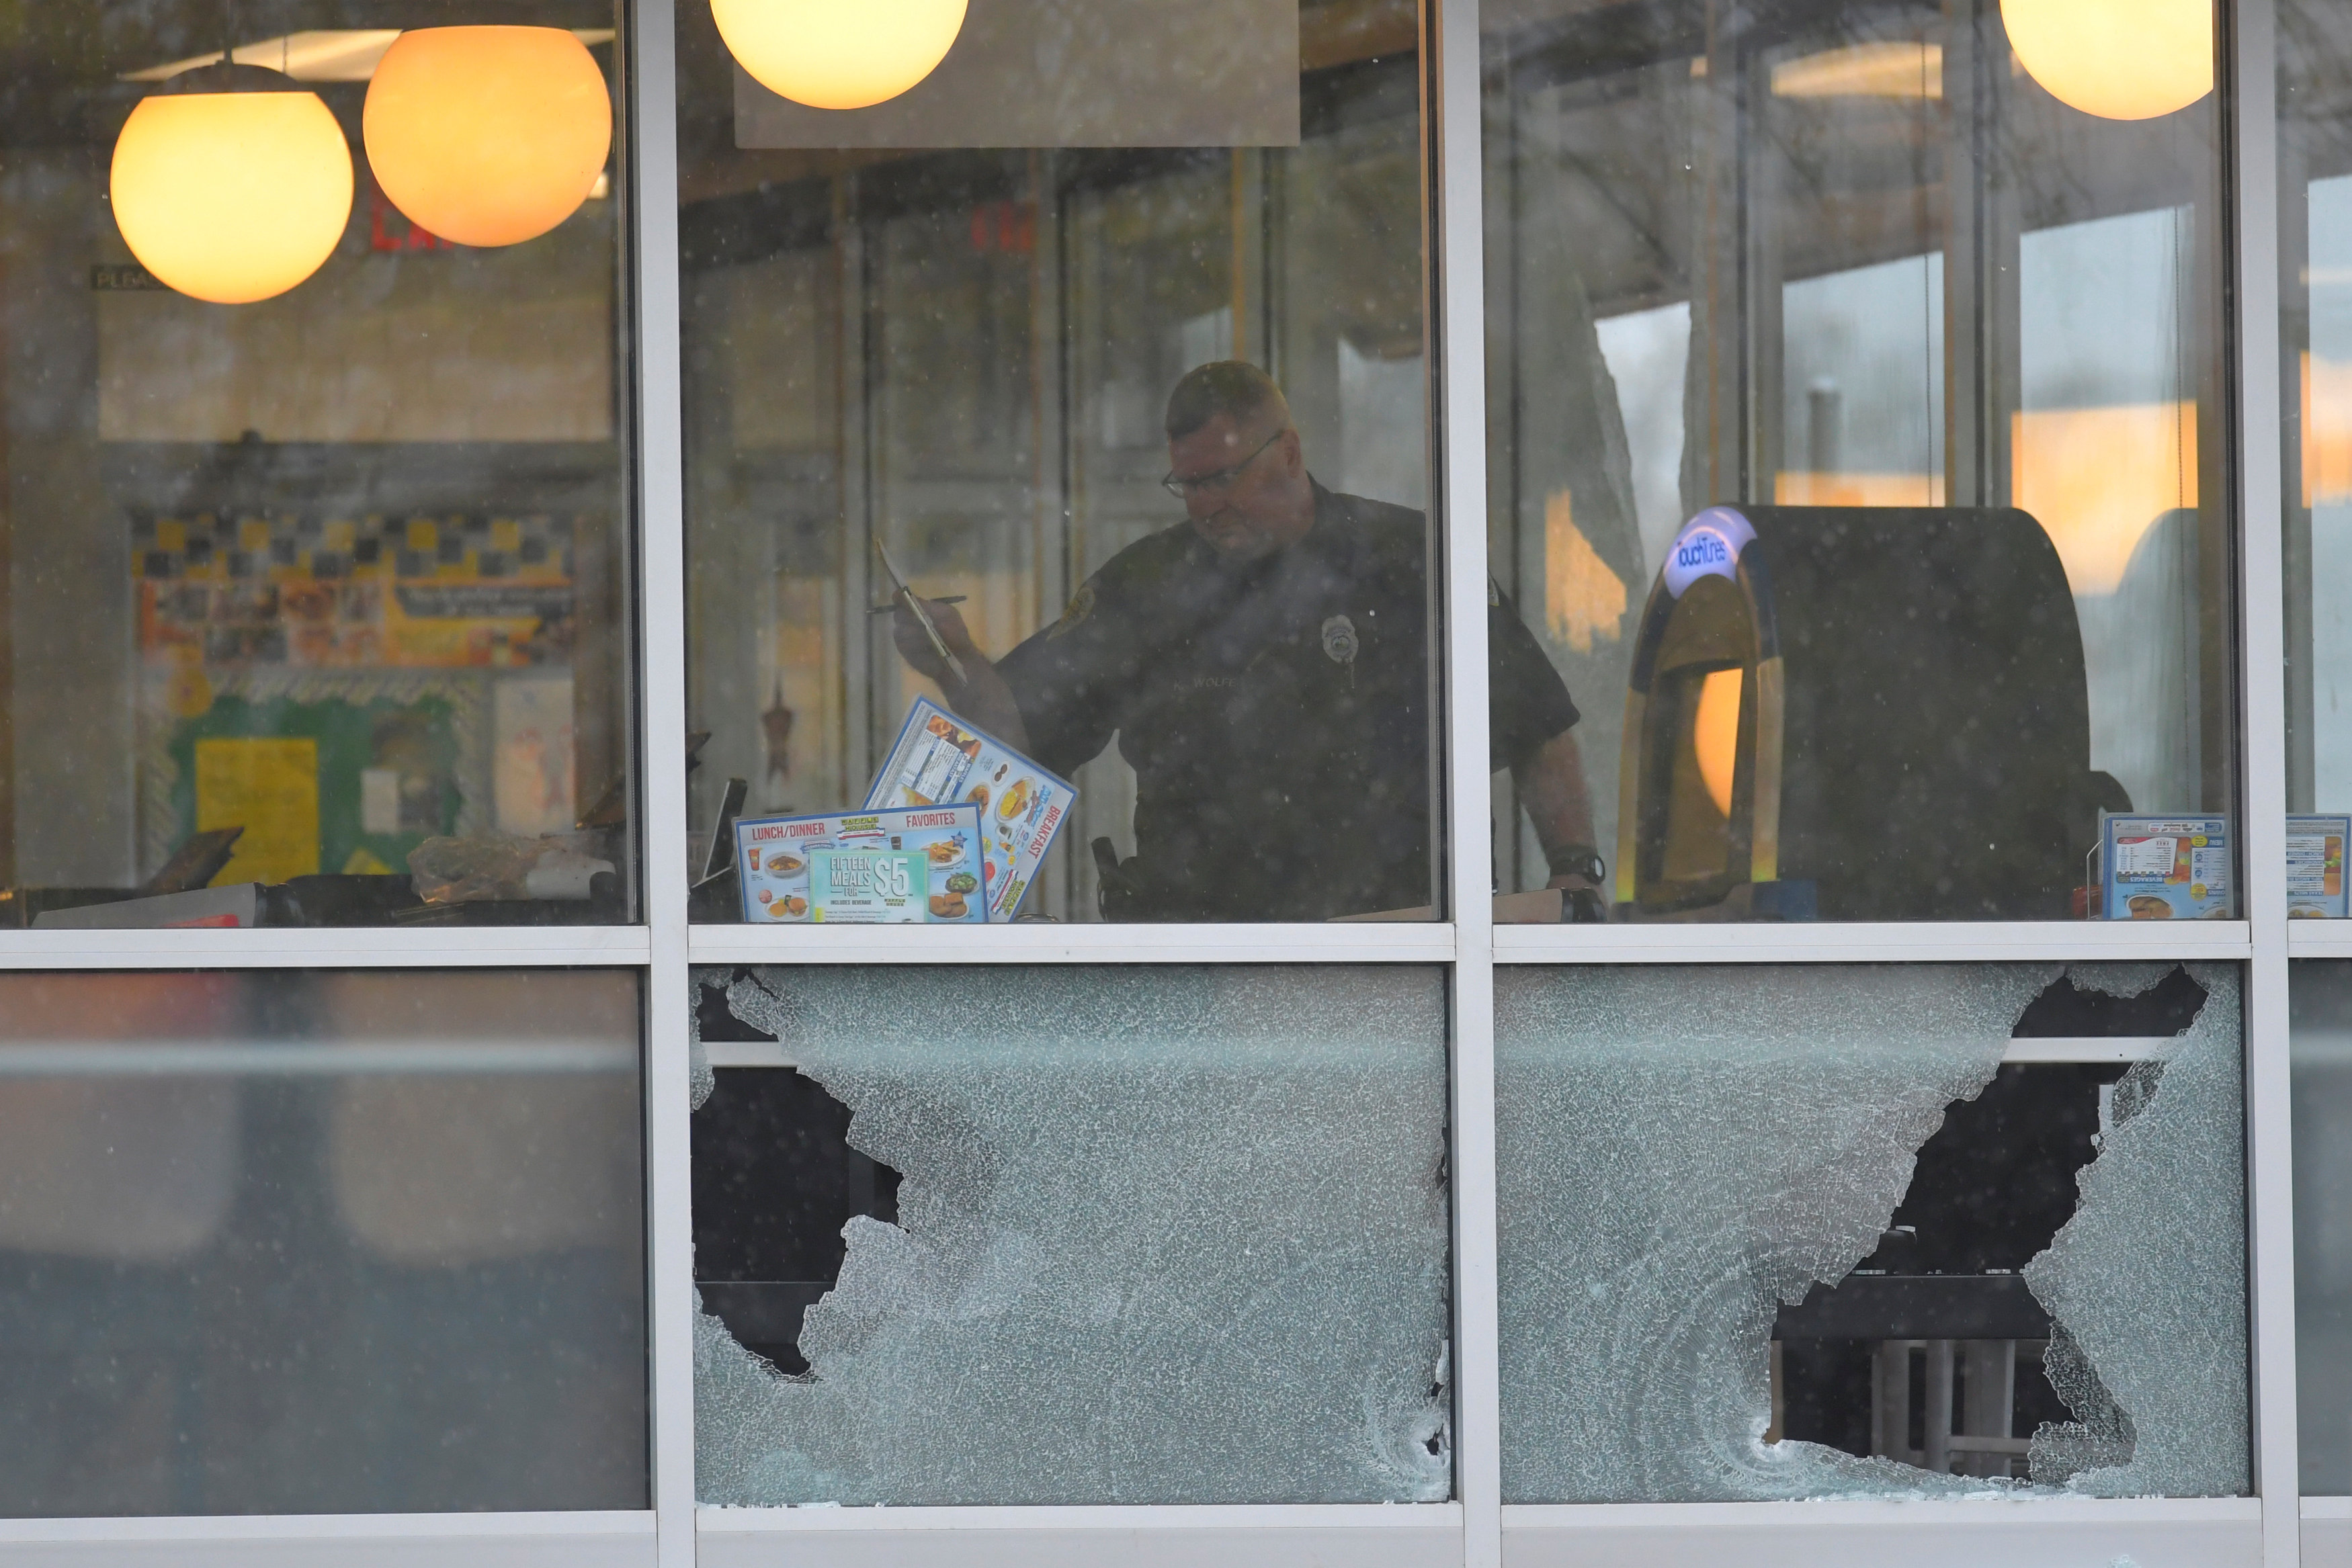 FILE PHOTO: Metro Davidson County Police inspect the scene of a fatal shooting at a Waffle House restaurant near Nashville, Tennessee, U.S., April 22, 2018. REUTERS/Harrison McClary